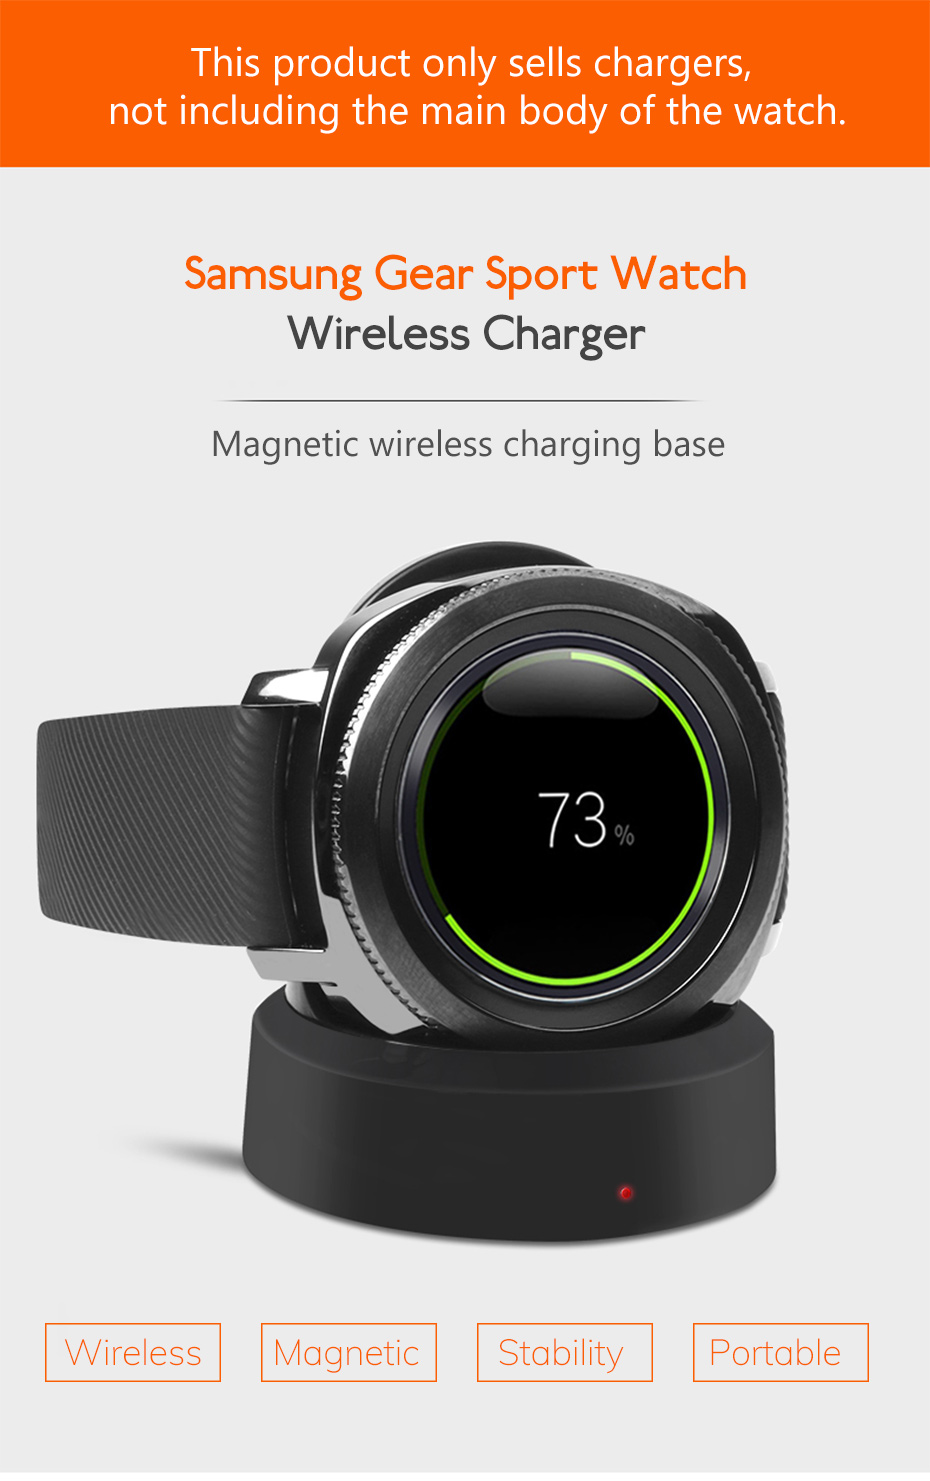 High Quality Wireless Charging Dock Charger Smart Watch Magnetic Adsorption Charging Satnd for Samsung Gear Sport Smart Watch (1)